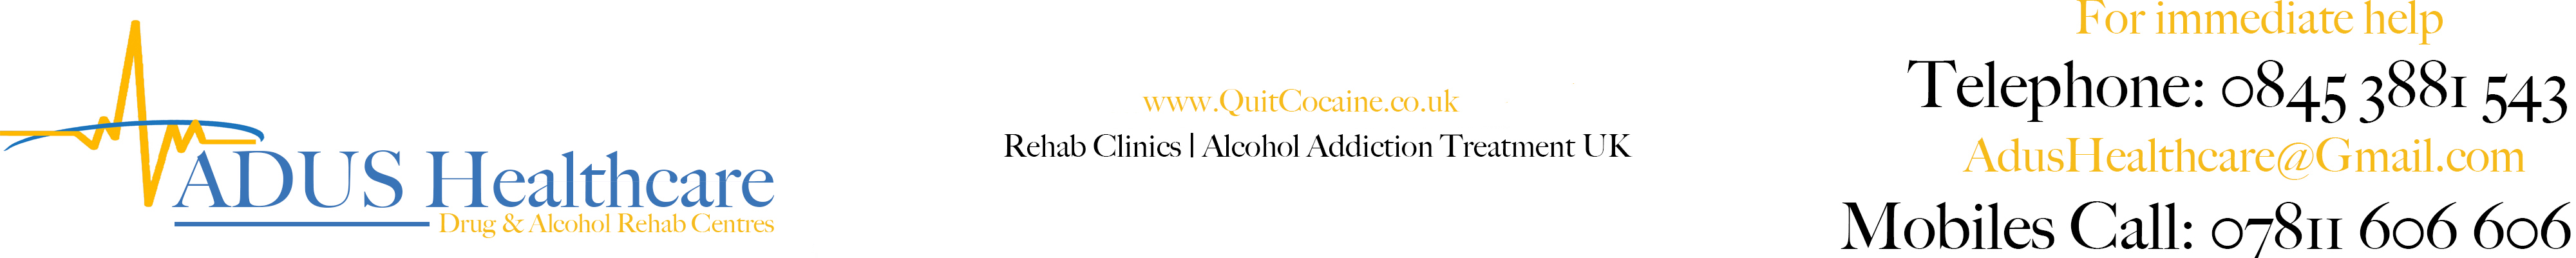 Quit Cocaine | Rehab Clinics for Drug Addiction